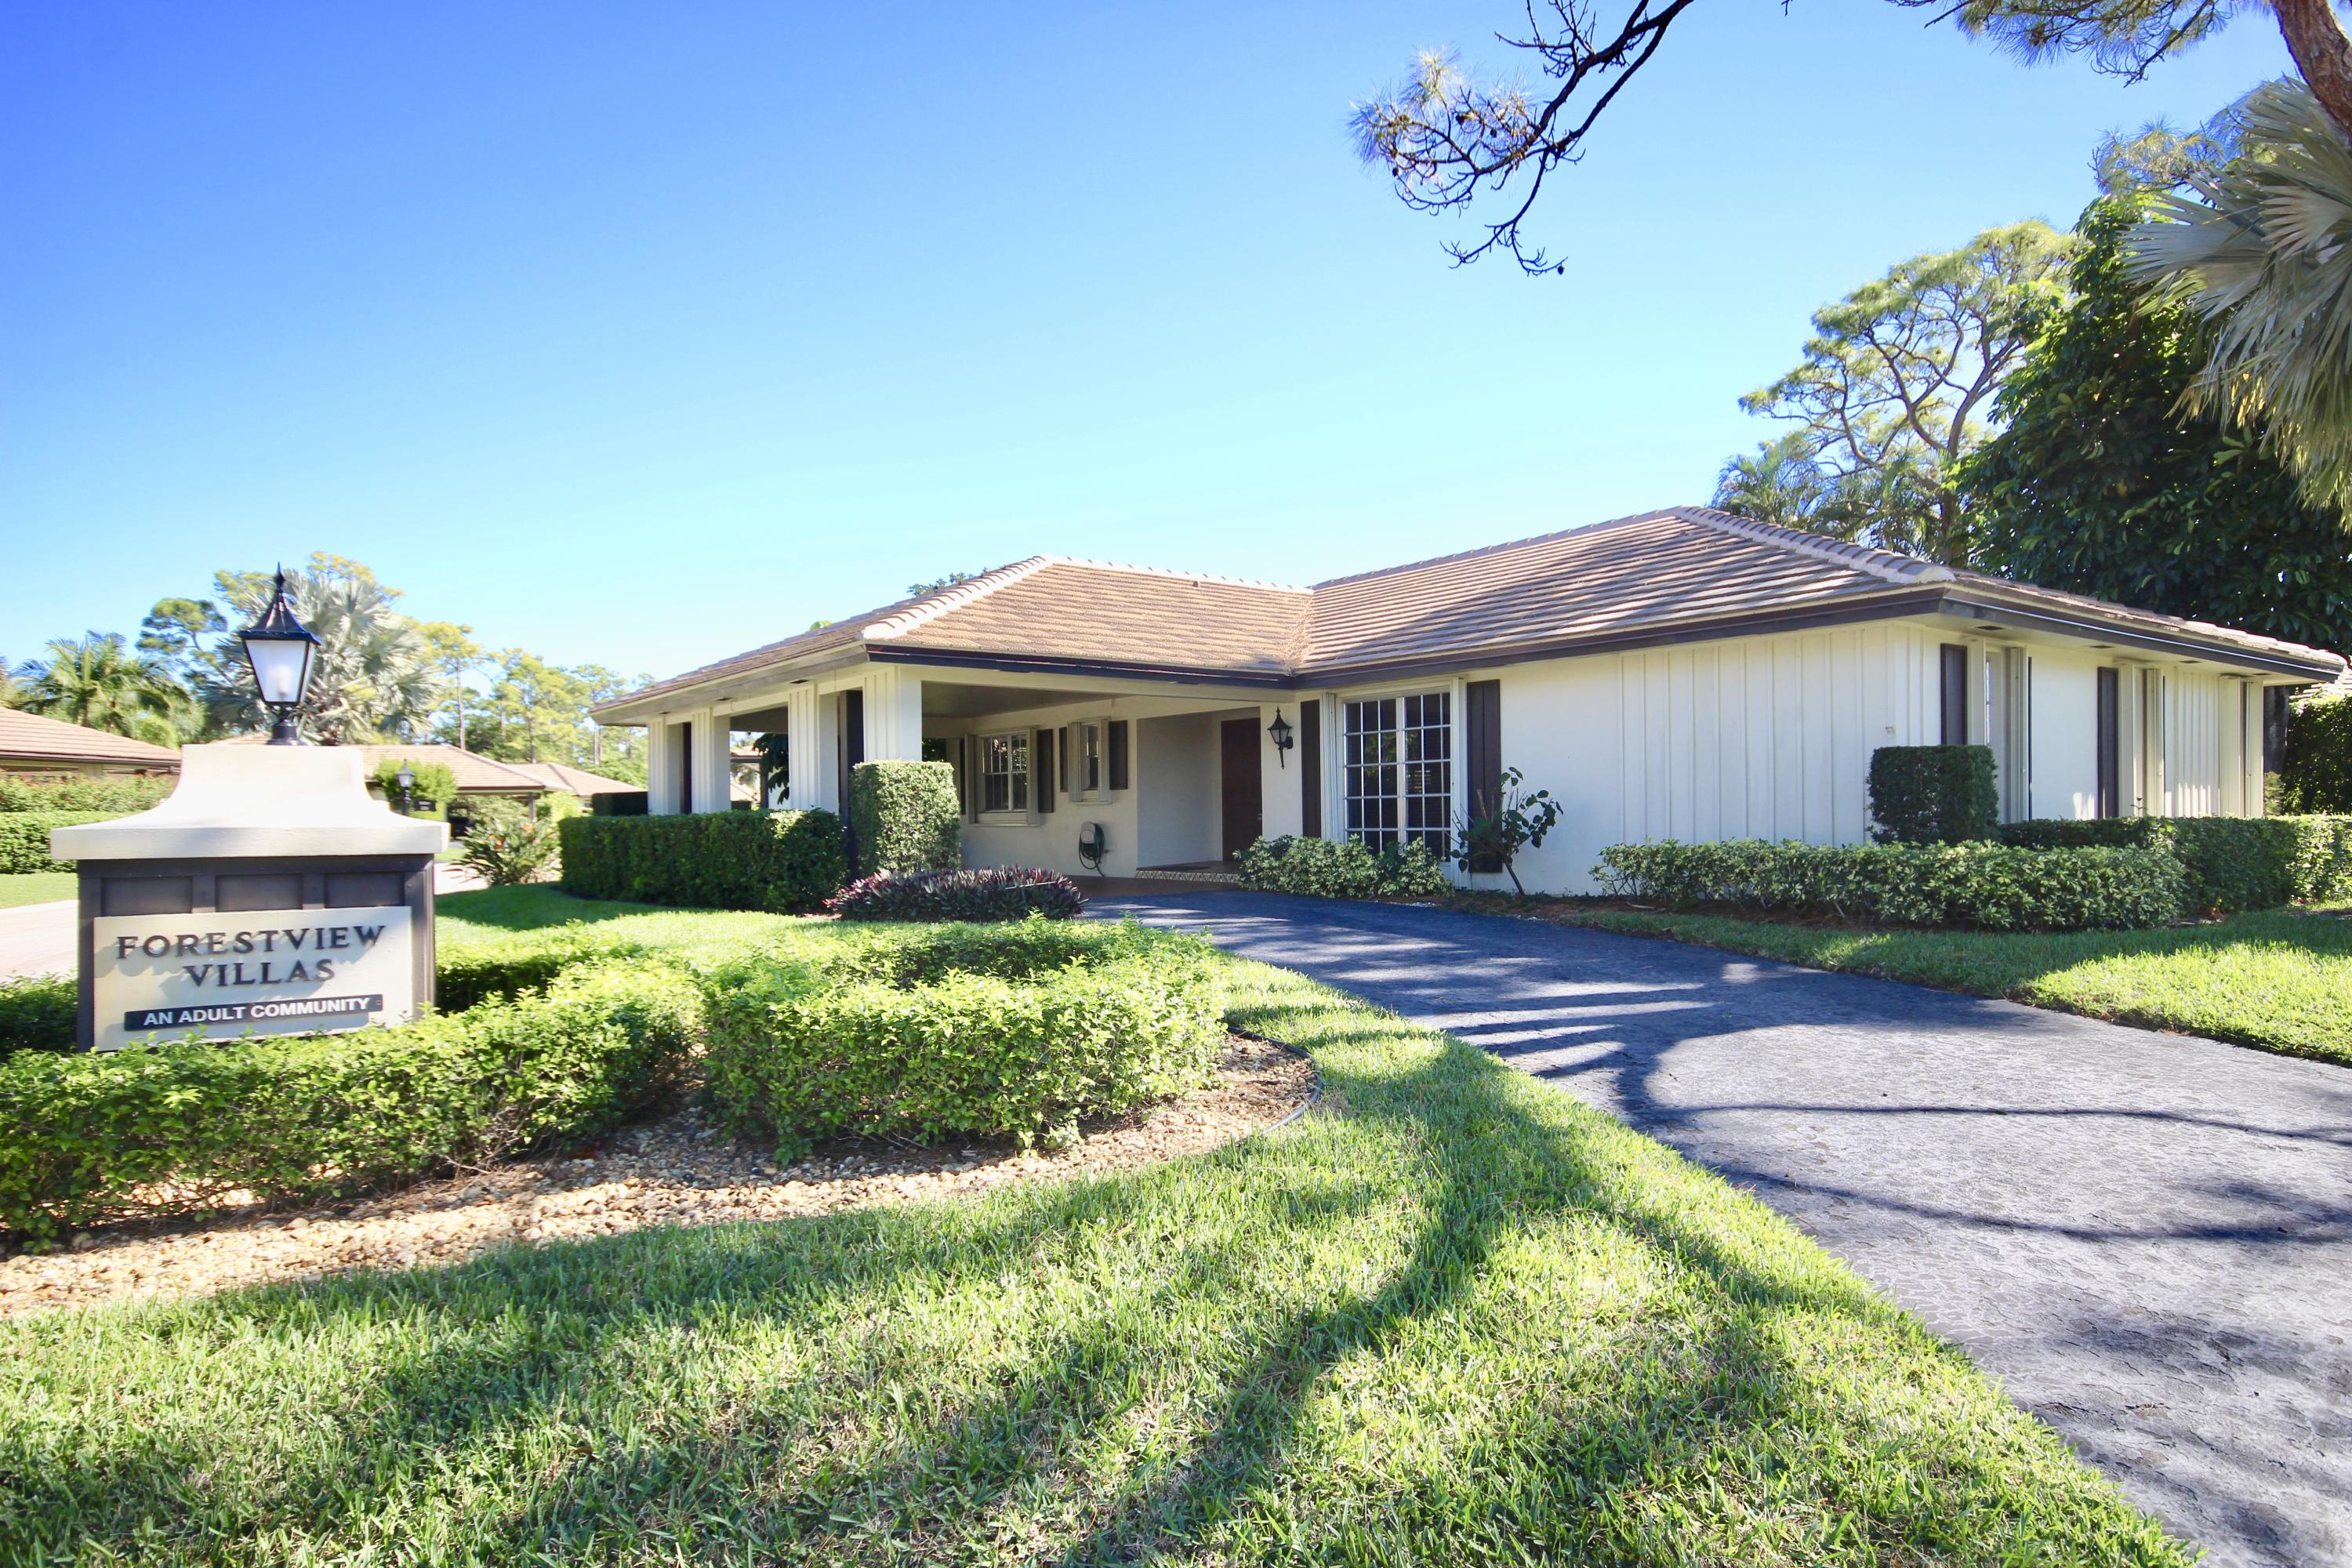 538 Forestview Drive, Atlantis, Florida 33462, 3 Bedrooms Bedrooms, ,2 BathroomsBathrooms,Single Family,For Sale,Forestview,RX-10498736